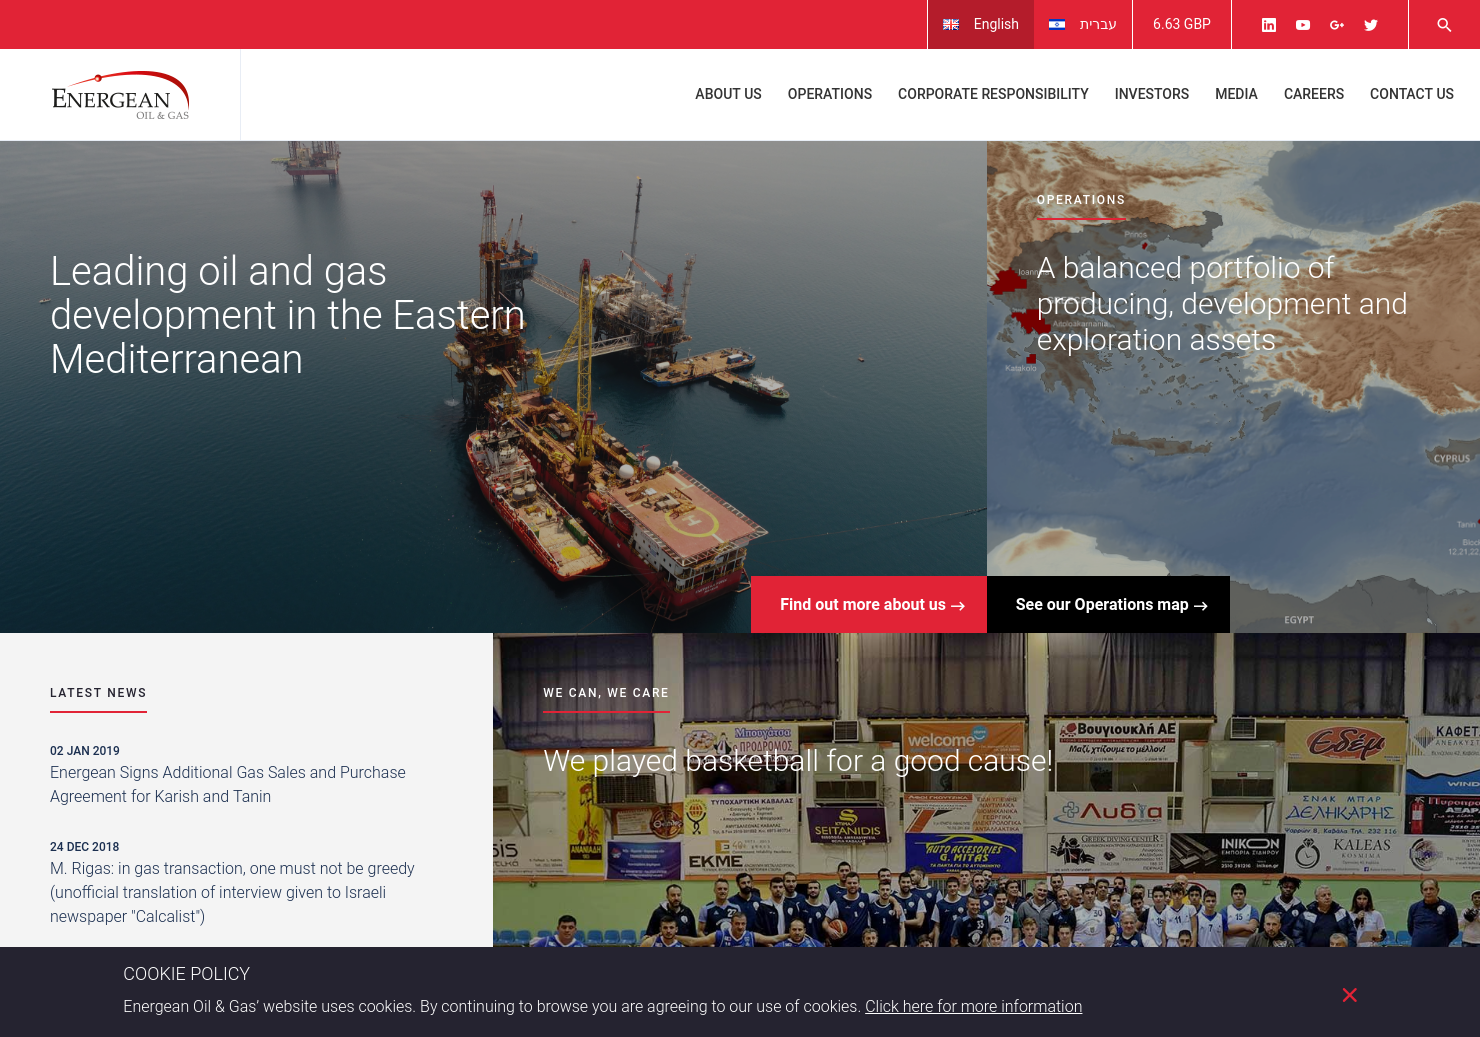 Energean Oil & Gas Home Page